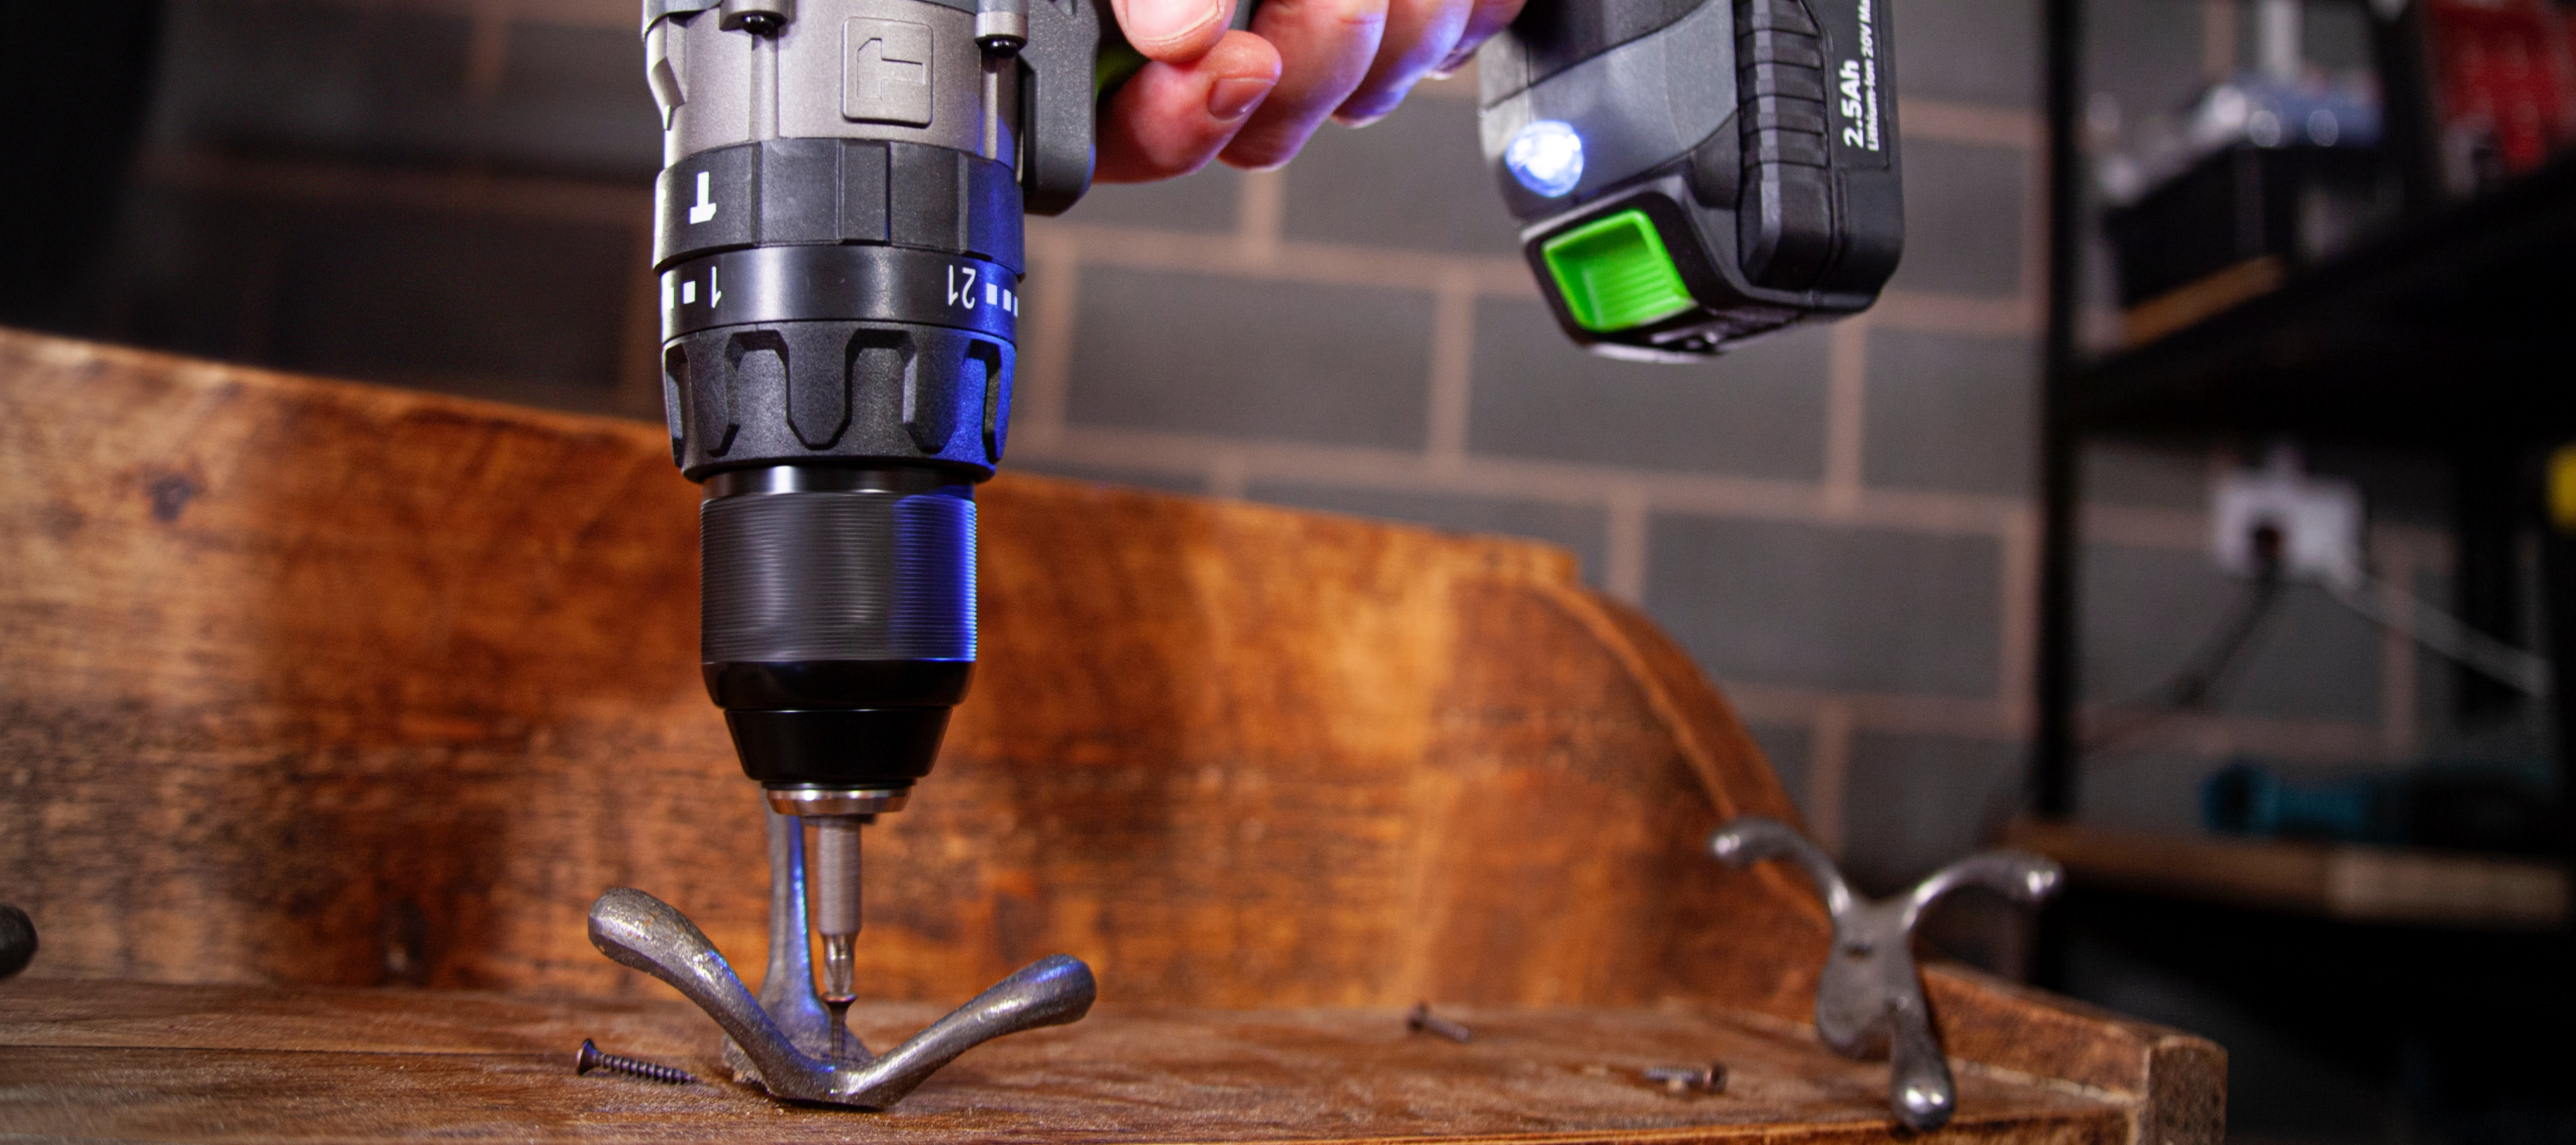 Impressive power of the cordless combi drill